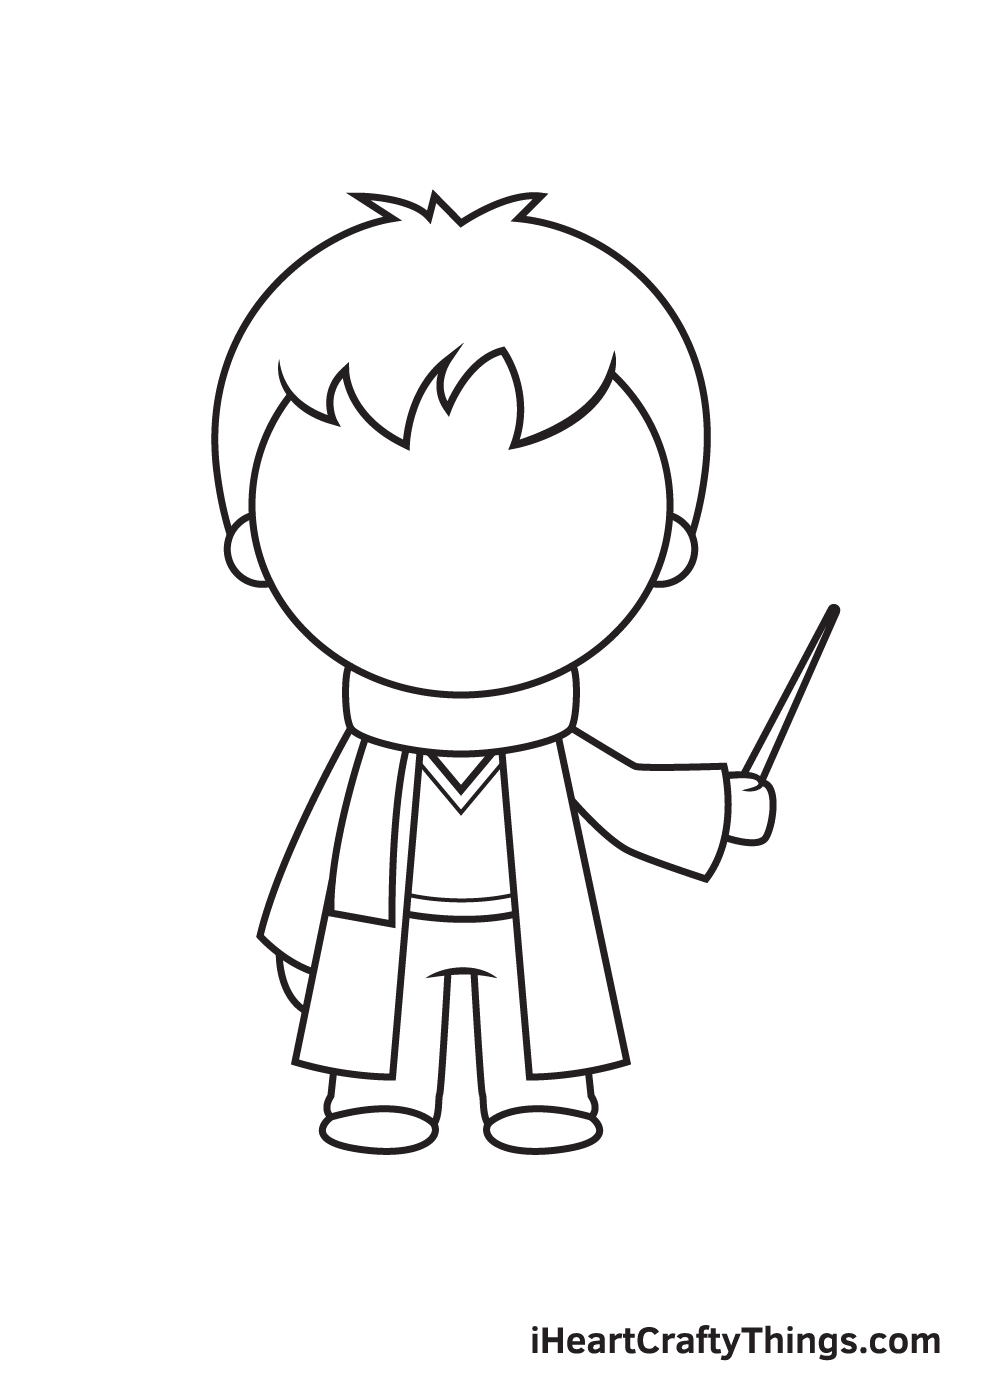 Harry Potter Drawing – Step 7